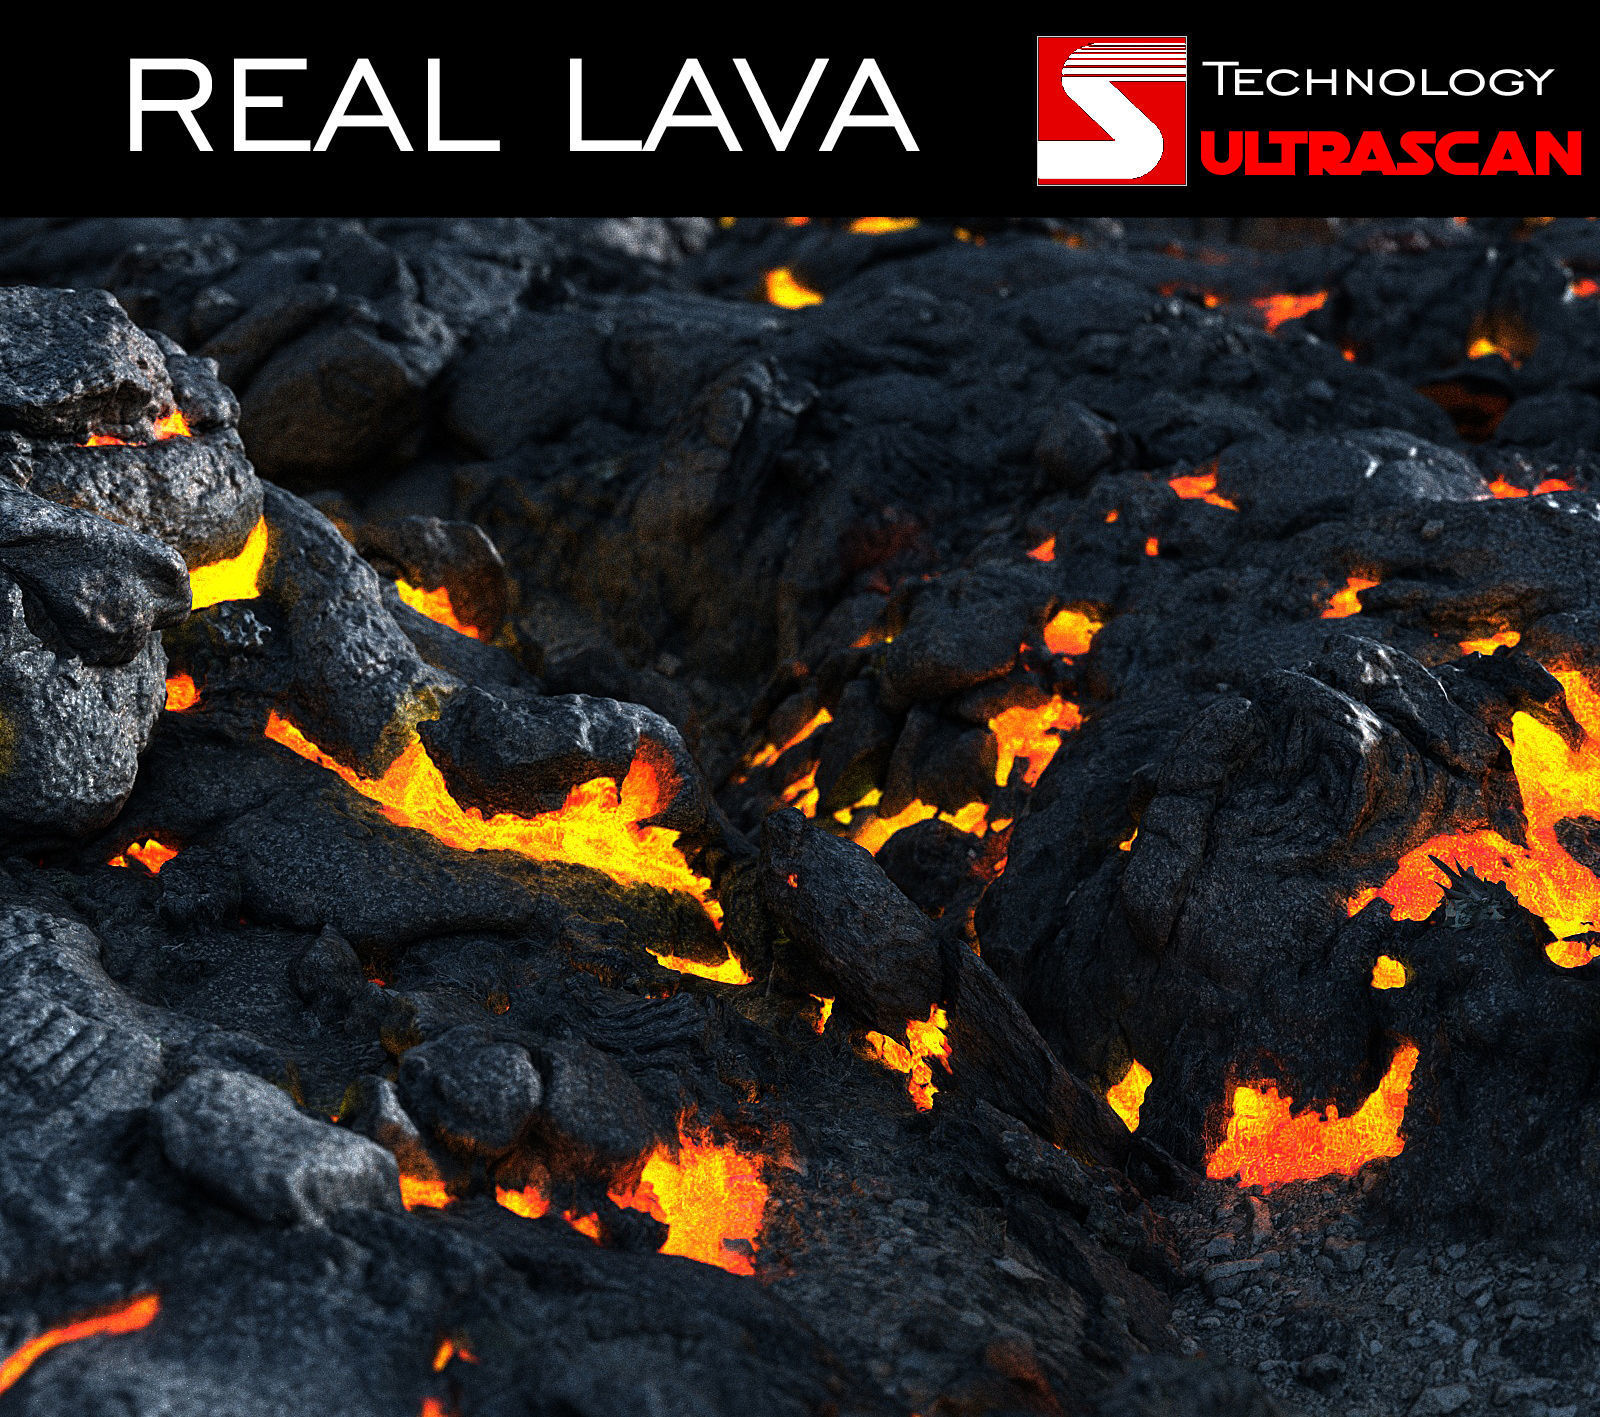 REAL LAVA